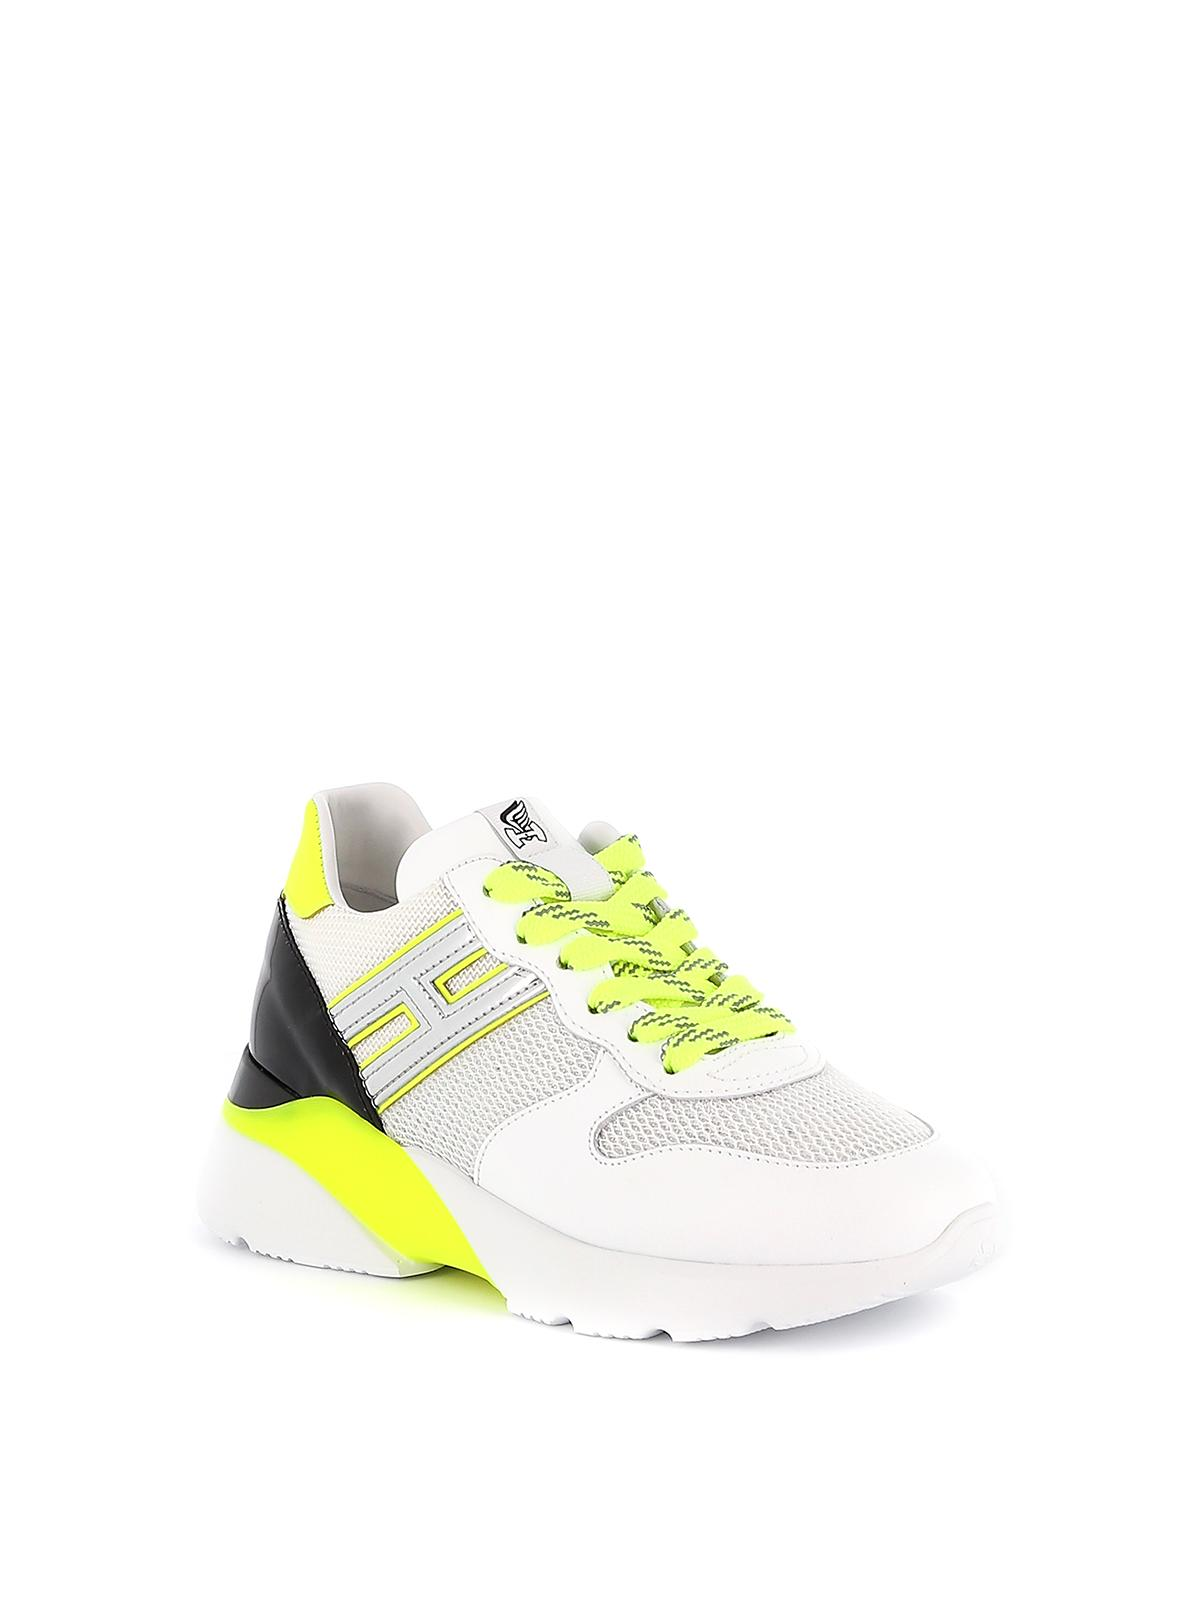 Sneakers Active One Gialle/arg